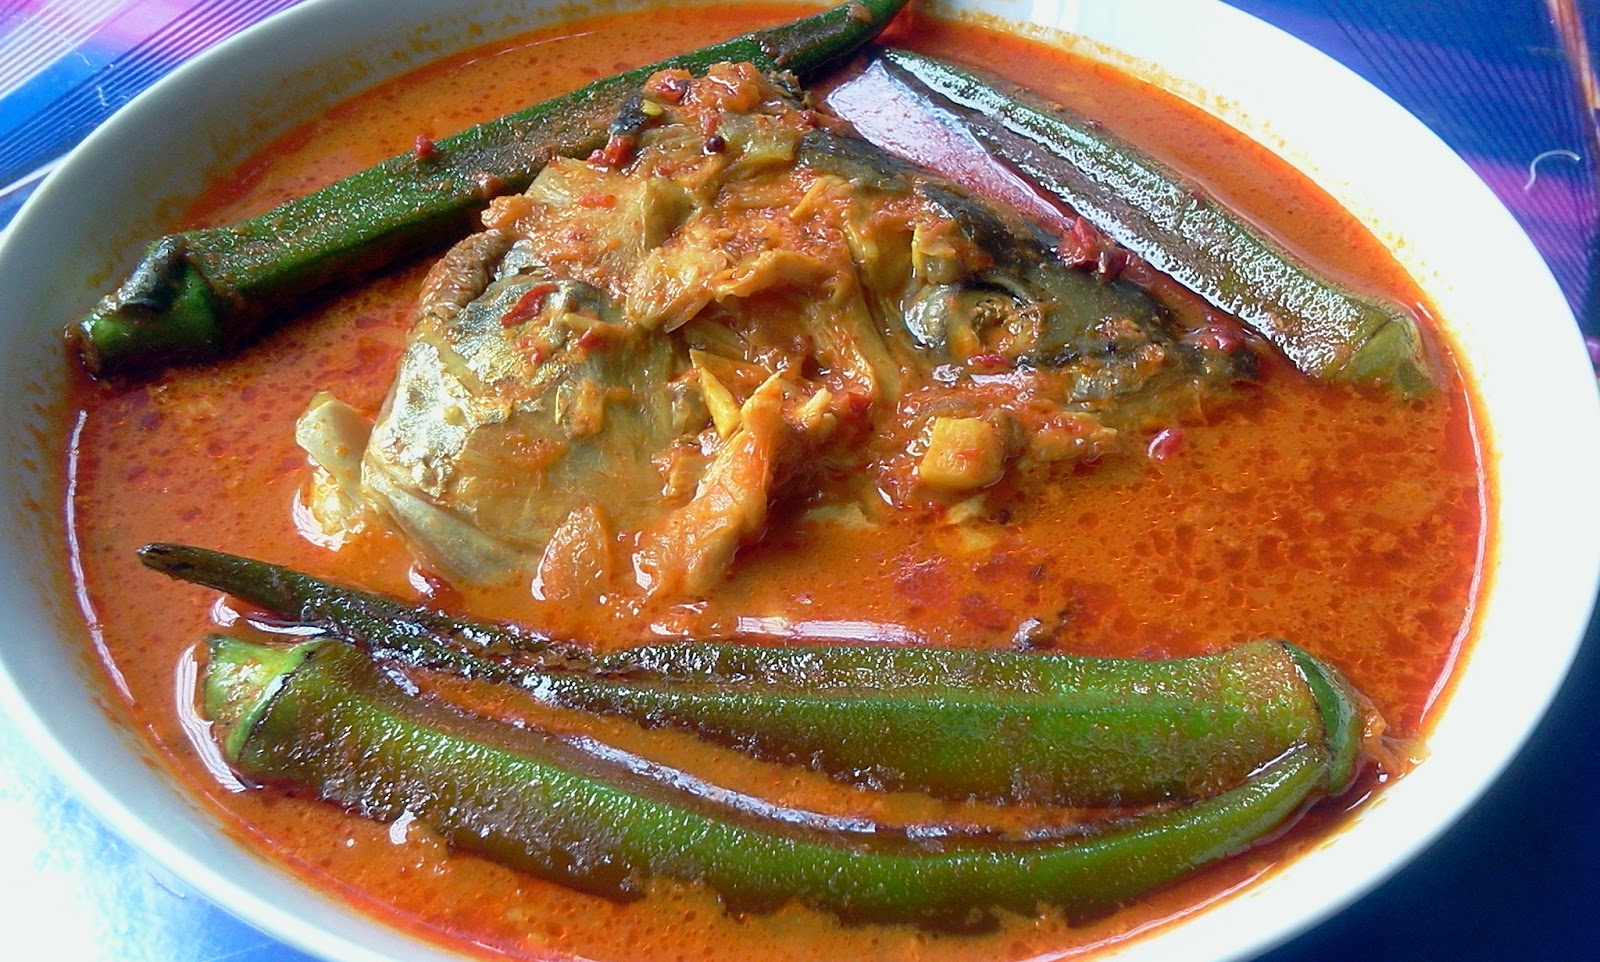 Zue's Personal Blog: Fish head curry - Salmon Fish Head Curry